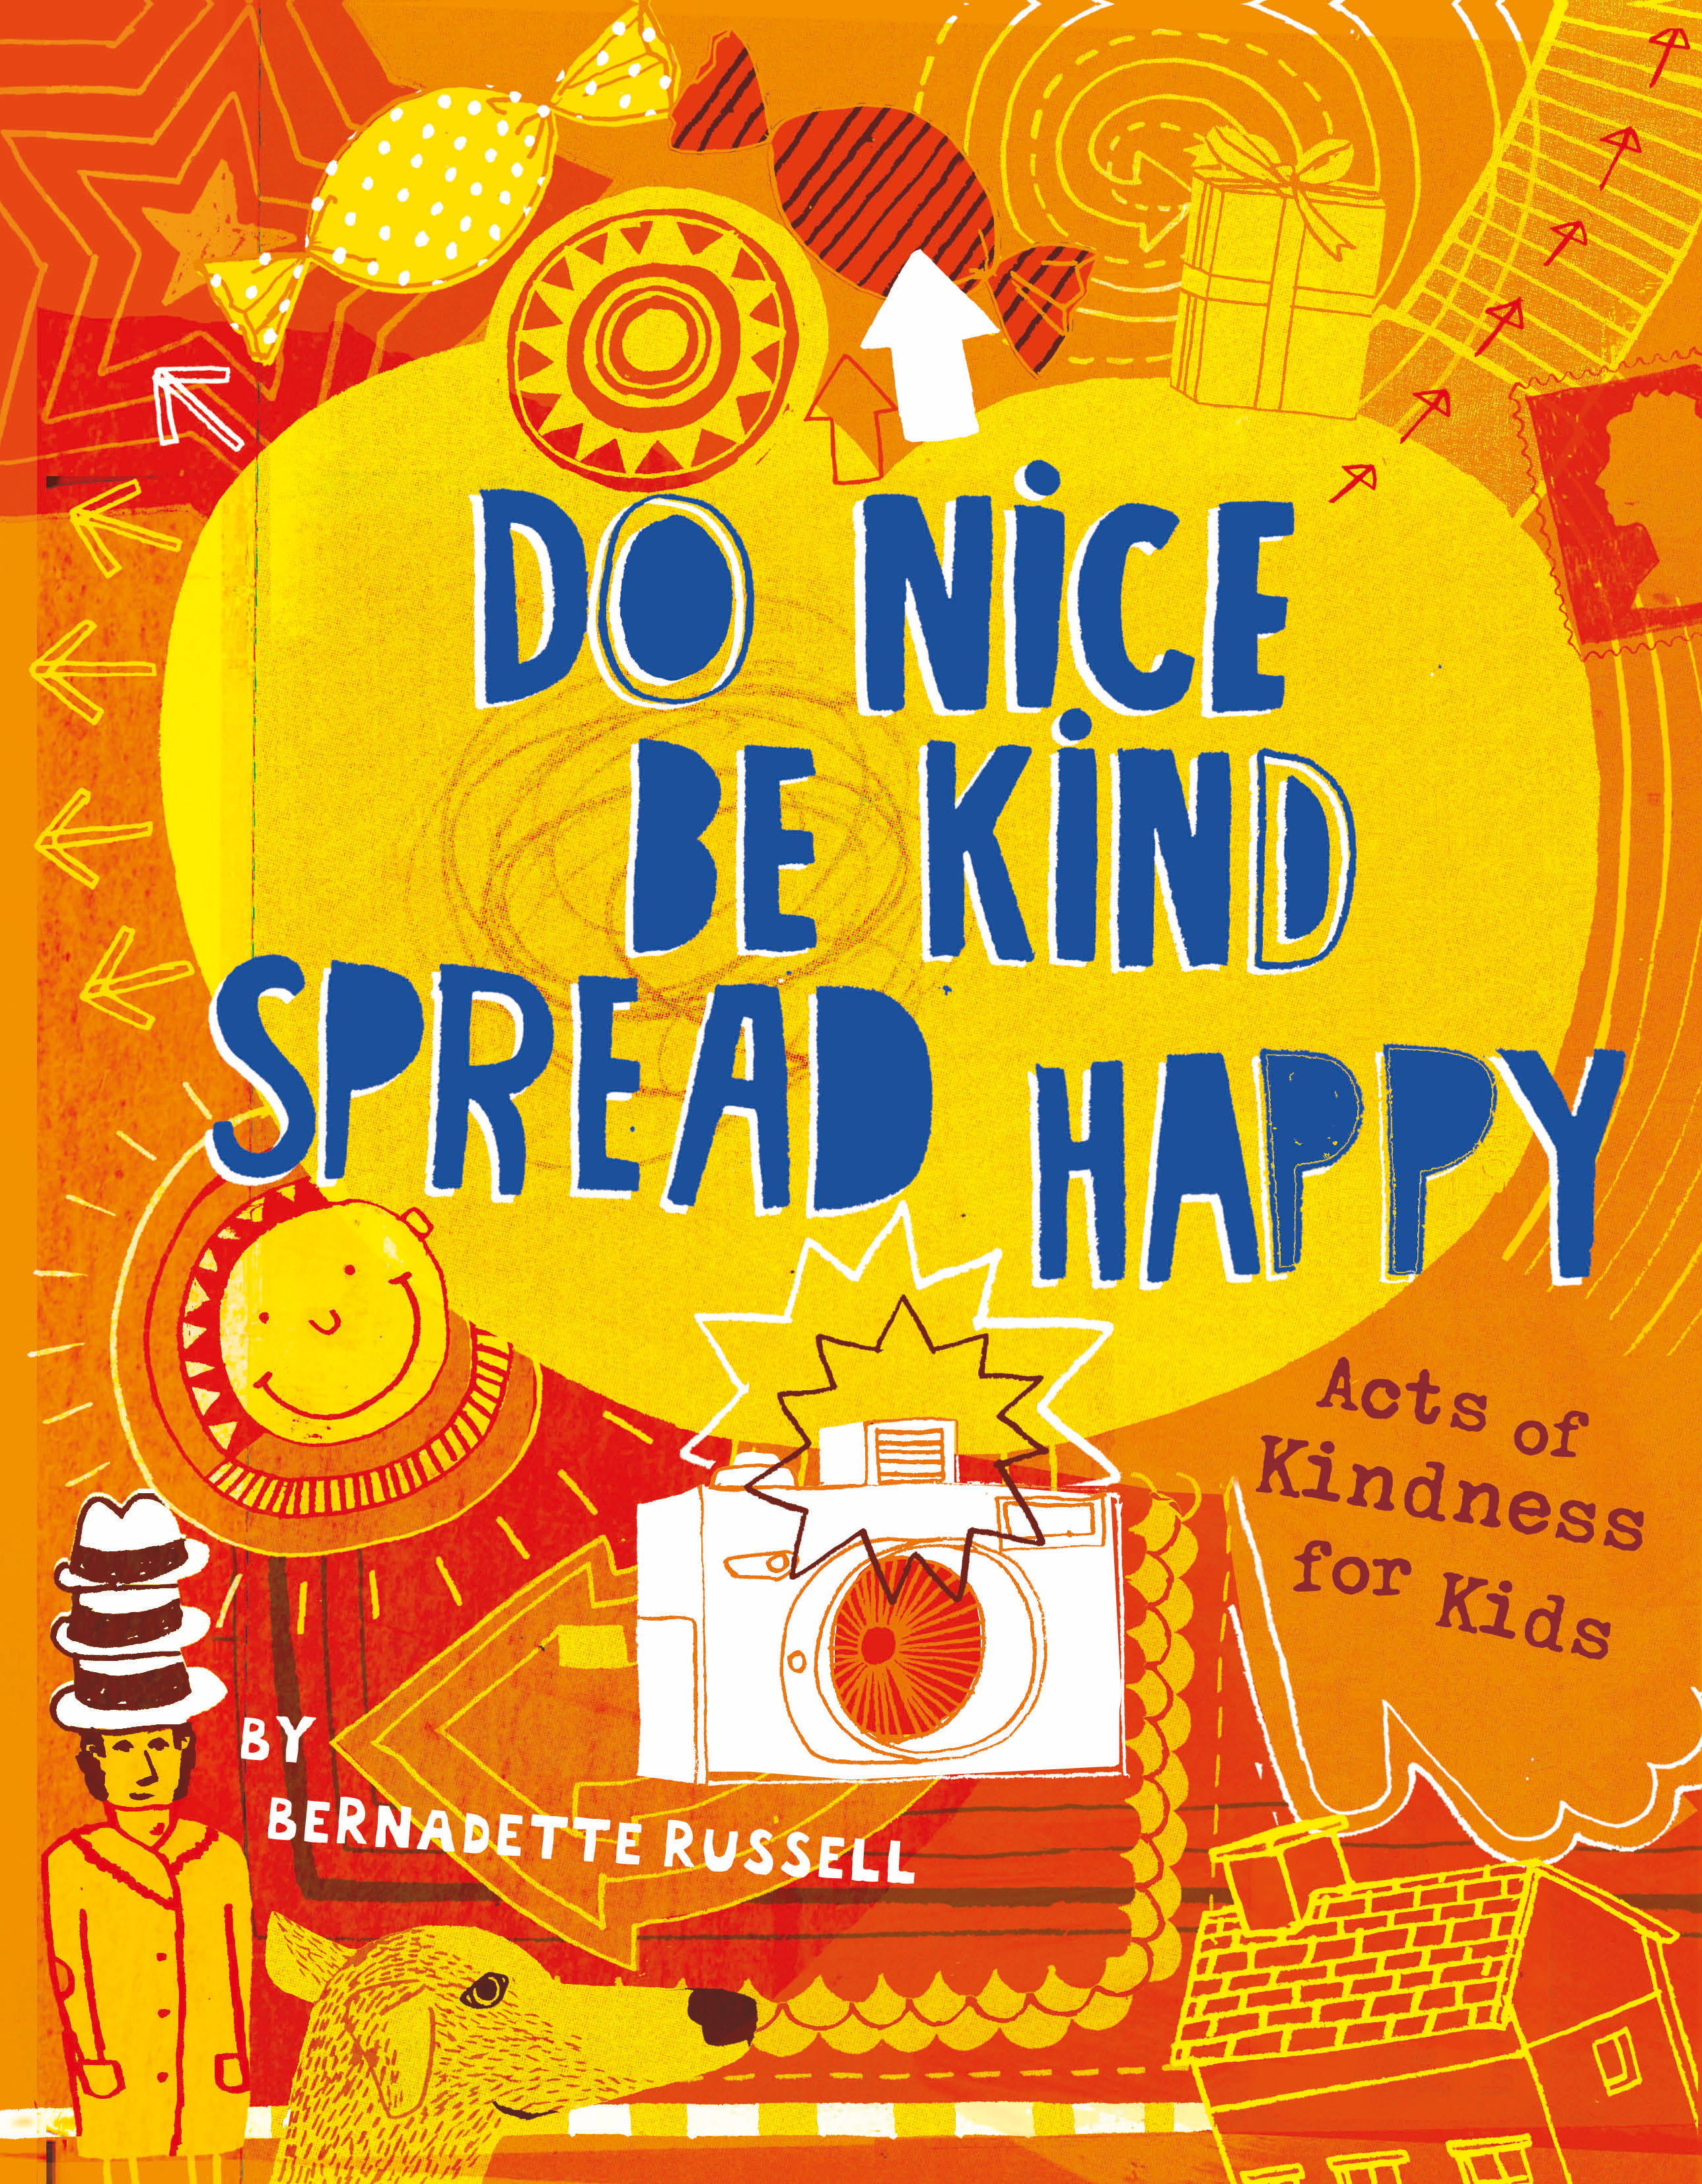 the act of being nice Kindness is a behavior marked by ethical characteristics, a pleasant disposition, and concern and consideration for othersit is considered a virtue, and is recognized as a value in many cultures and religions (see ethics in religion.